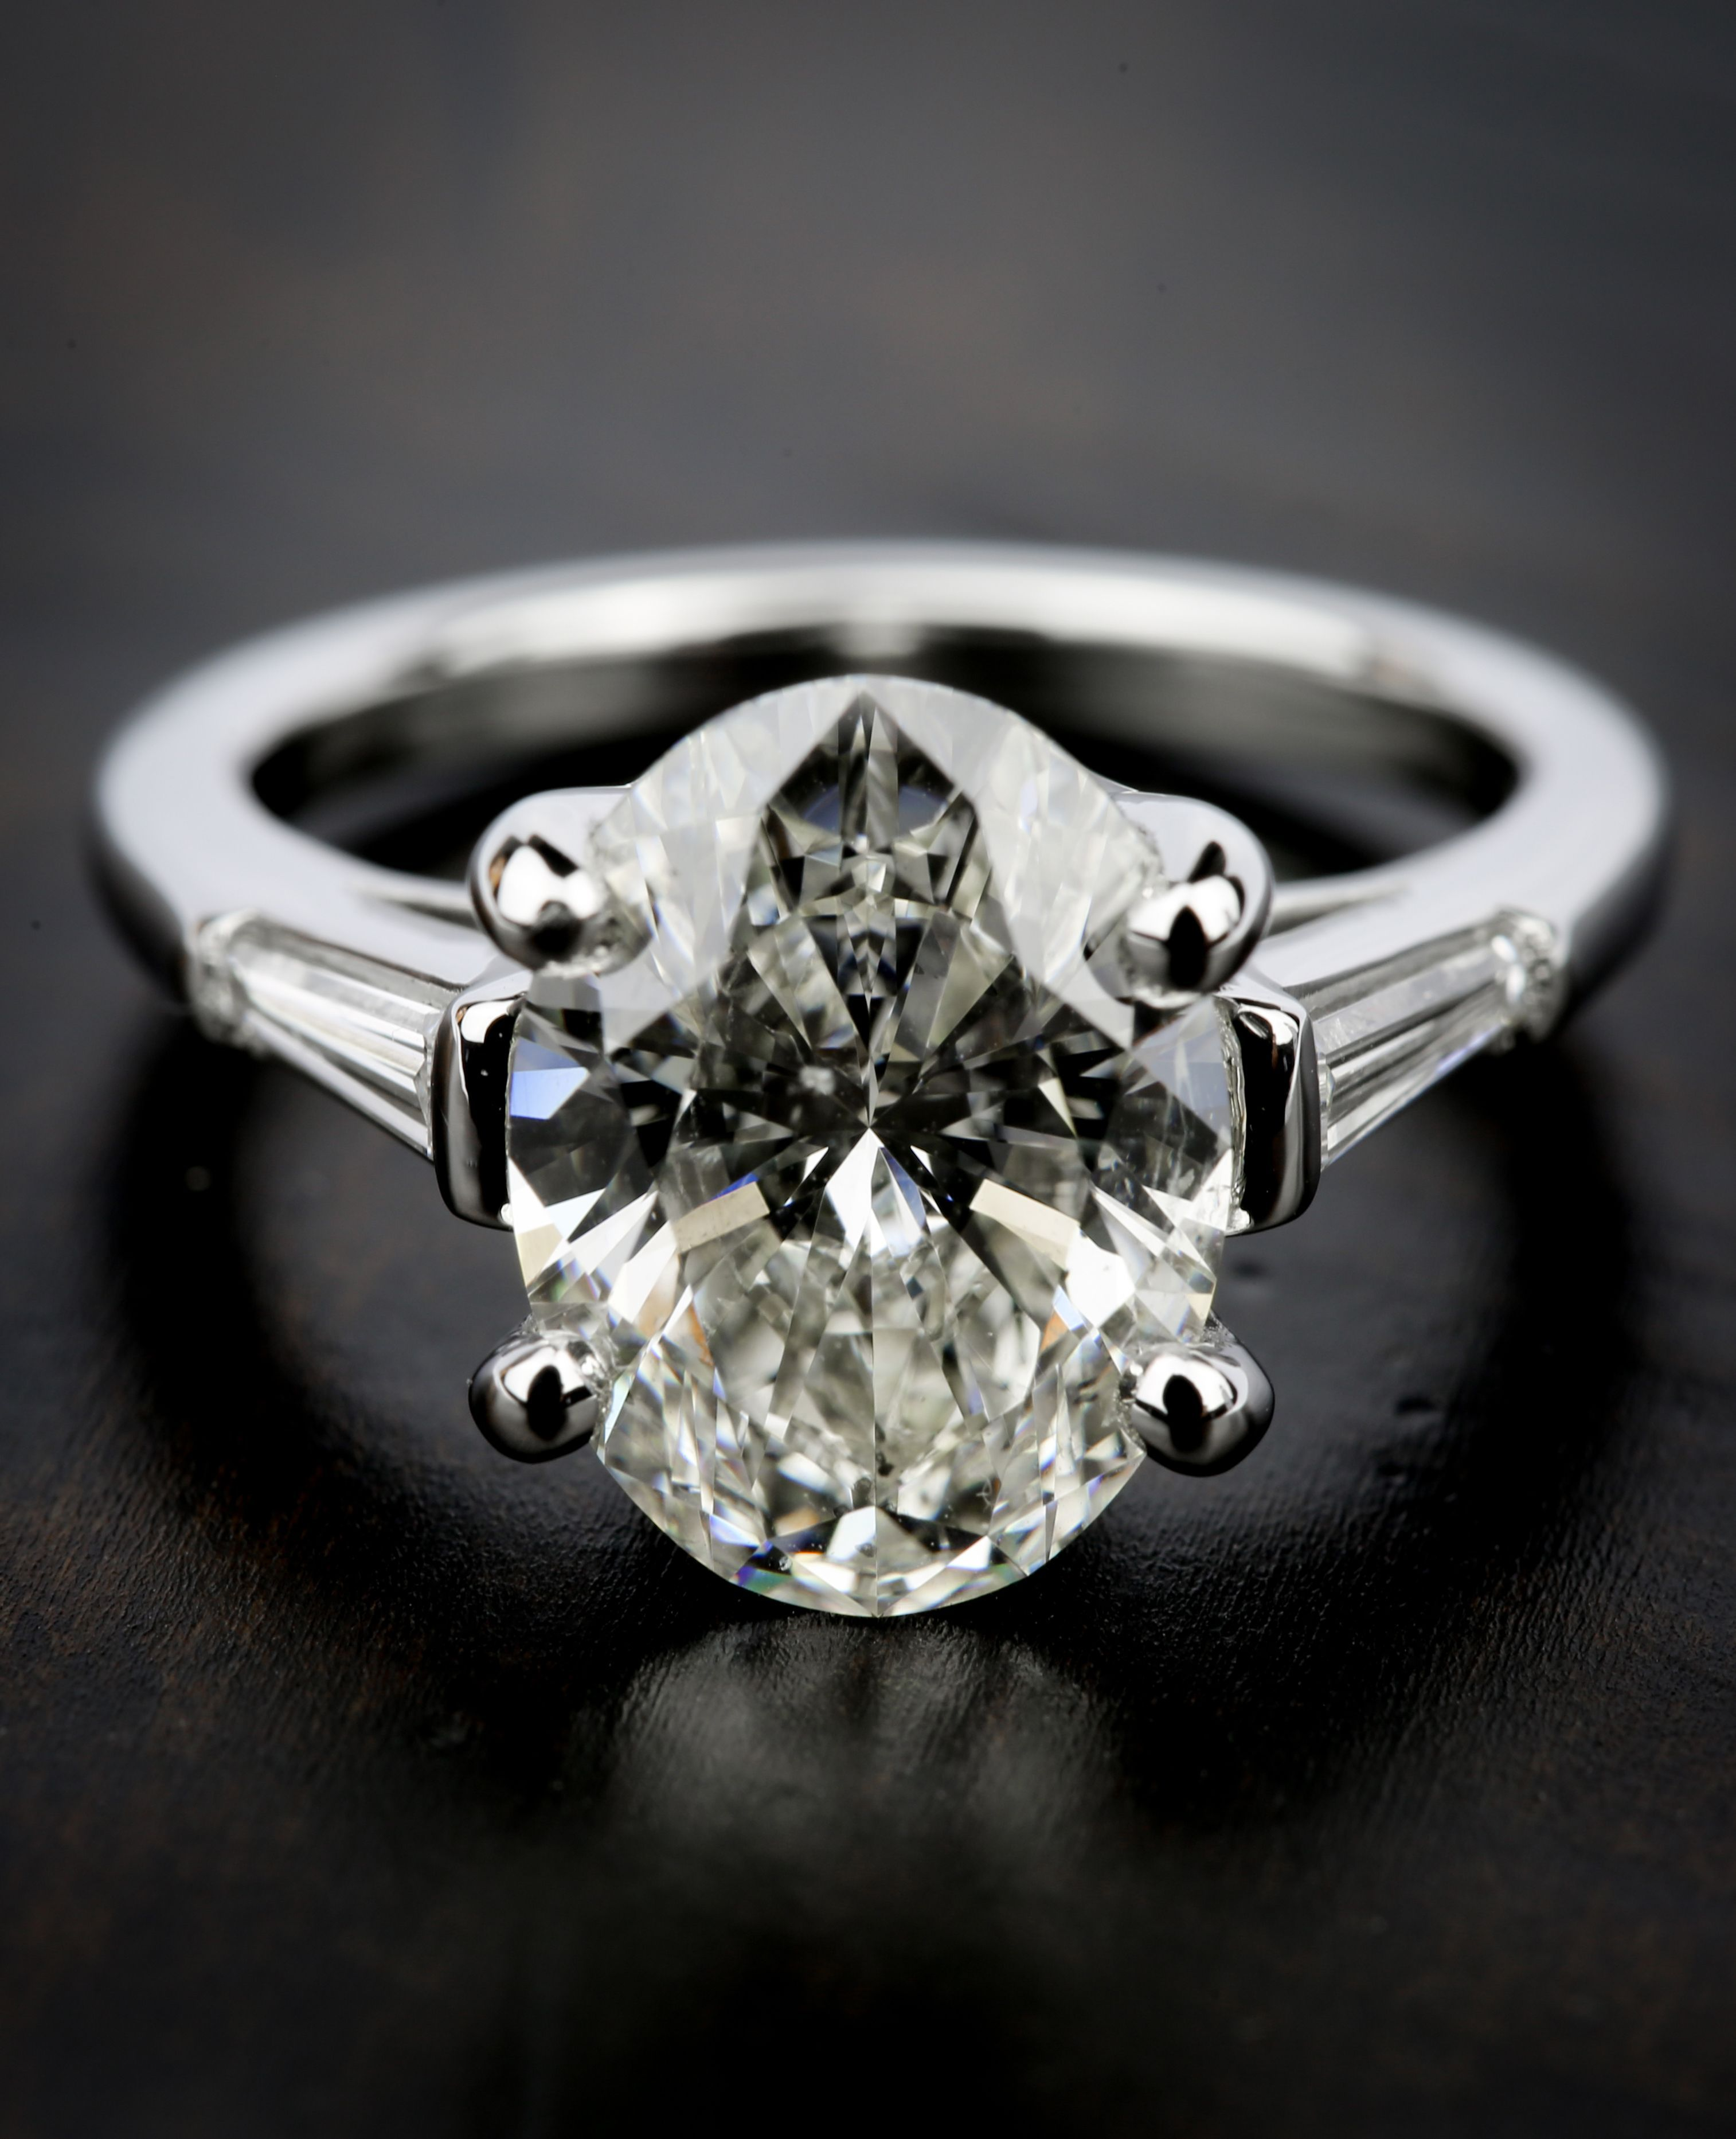 This stunning Three Stone Oval and Tapered Baguette